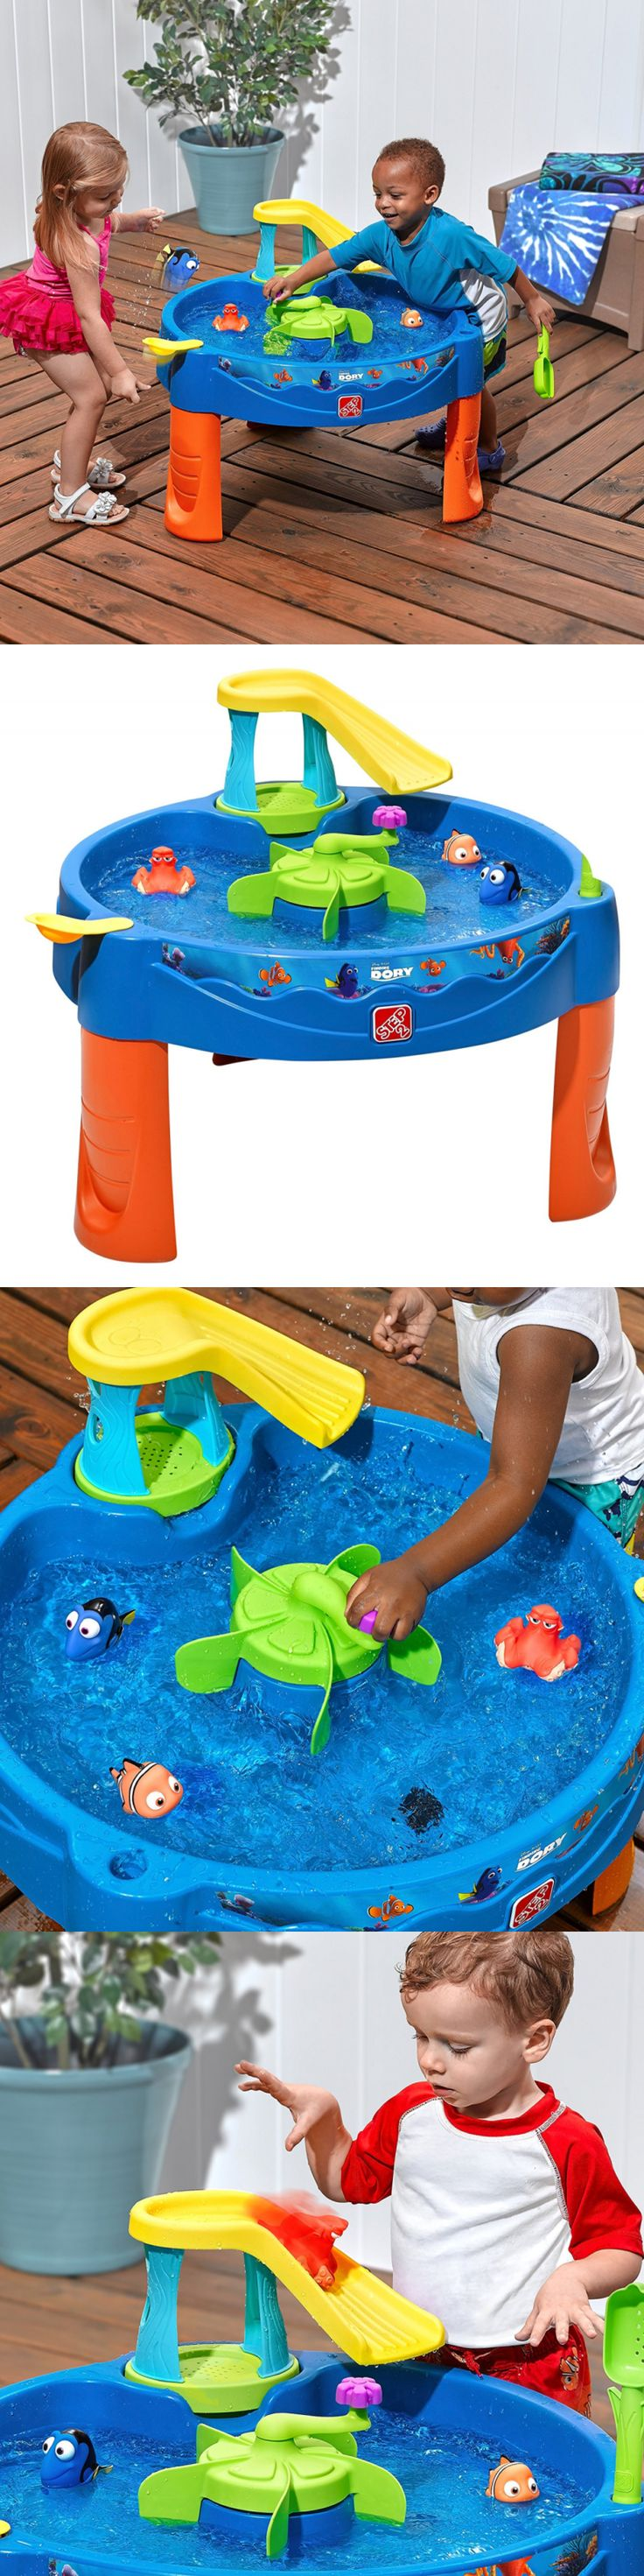 Other Outdoor Toys Structures 11742: Step2 Finding Dory Swim And Swirl Water Table Toys Fun Games Outdoor Kids Children -> BUY IT NOW ONLY: $66.17 on eBay!